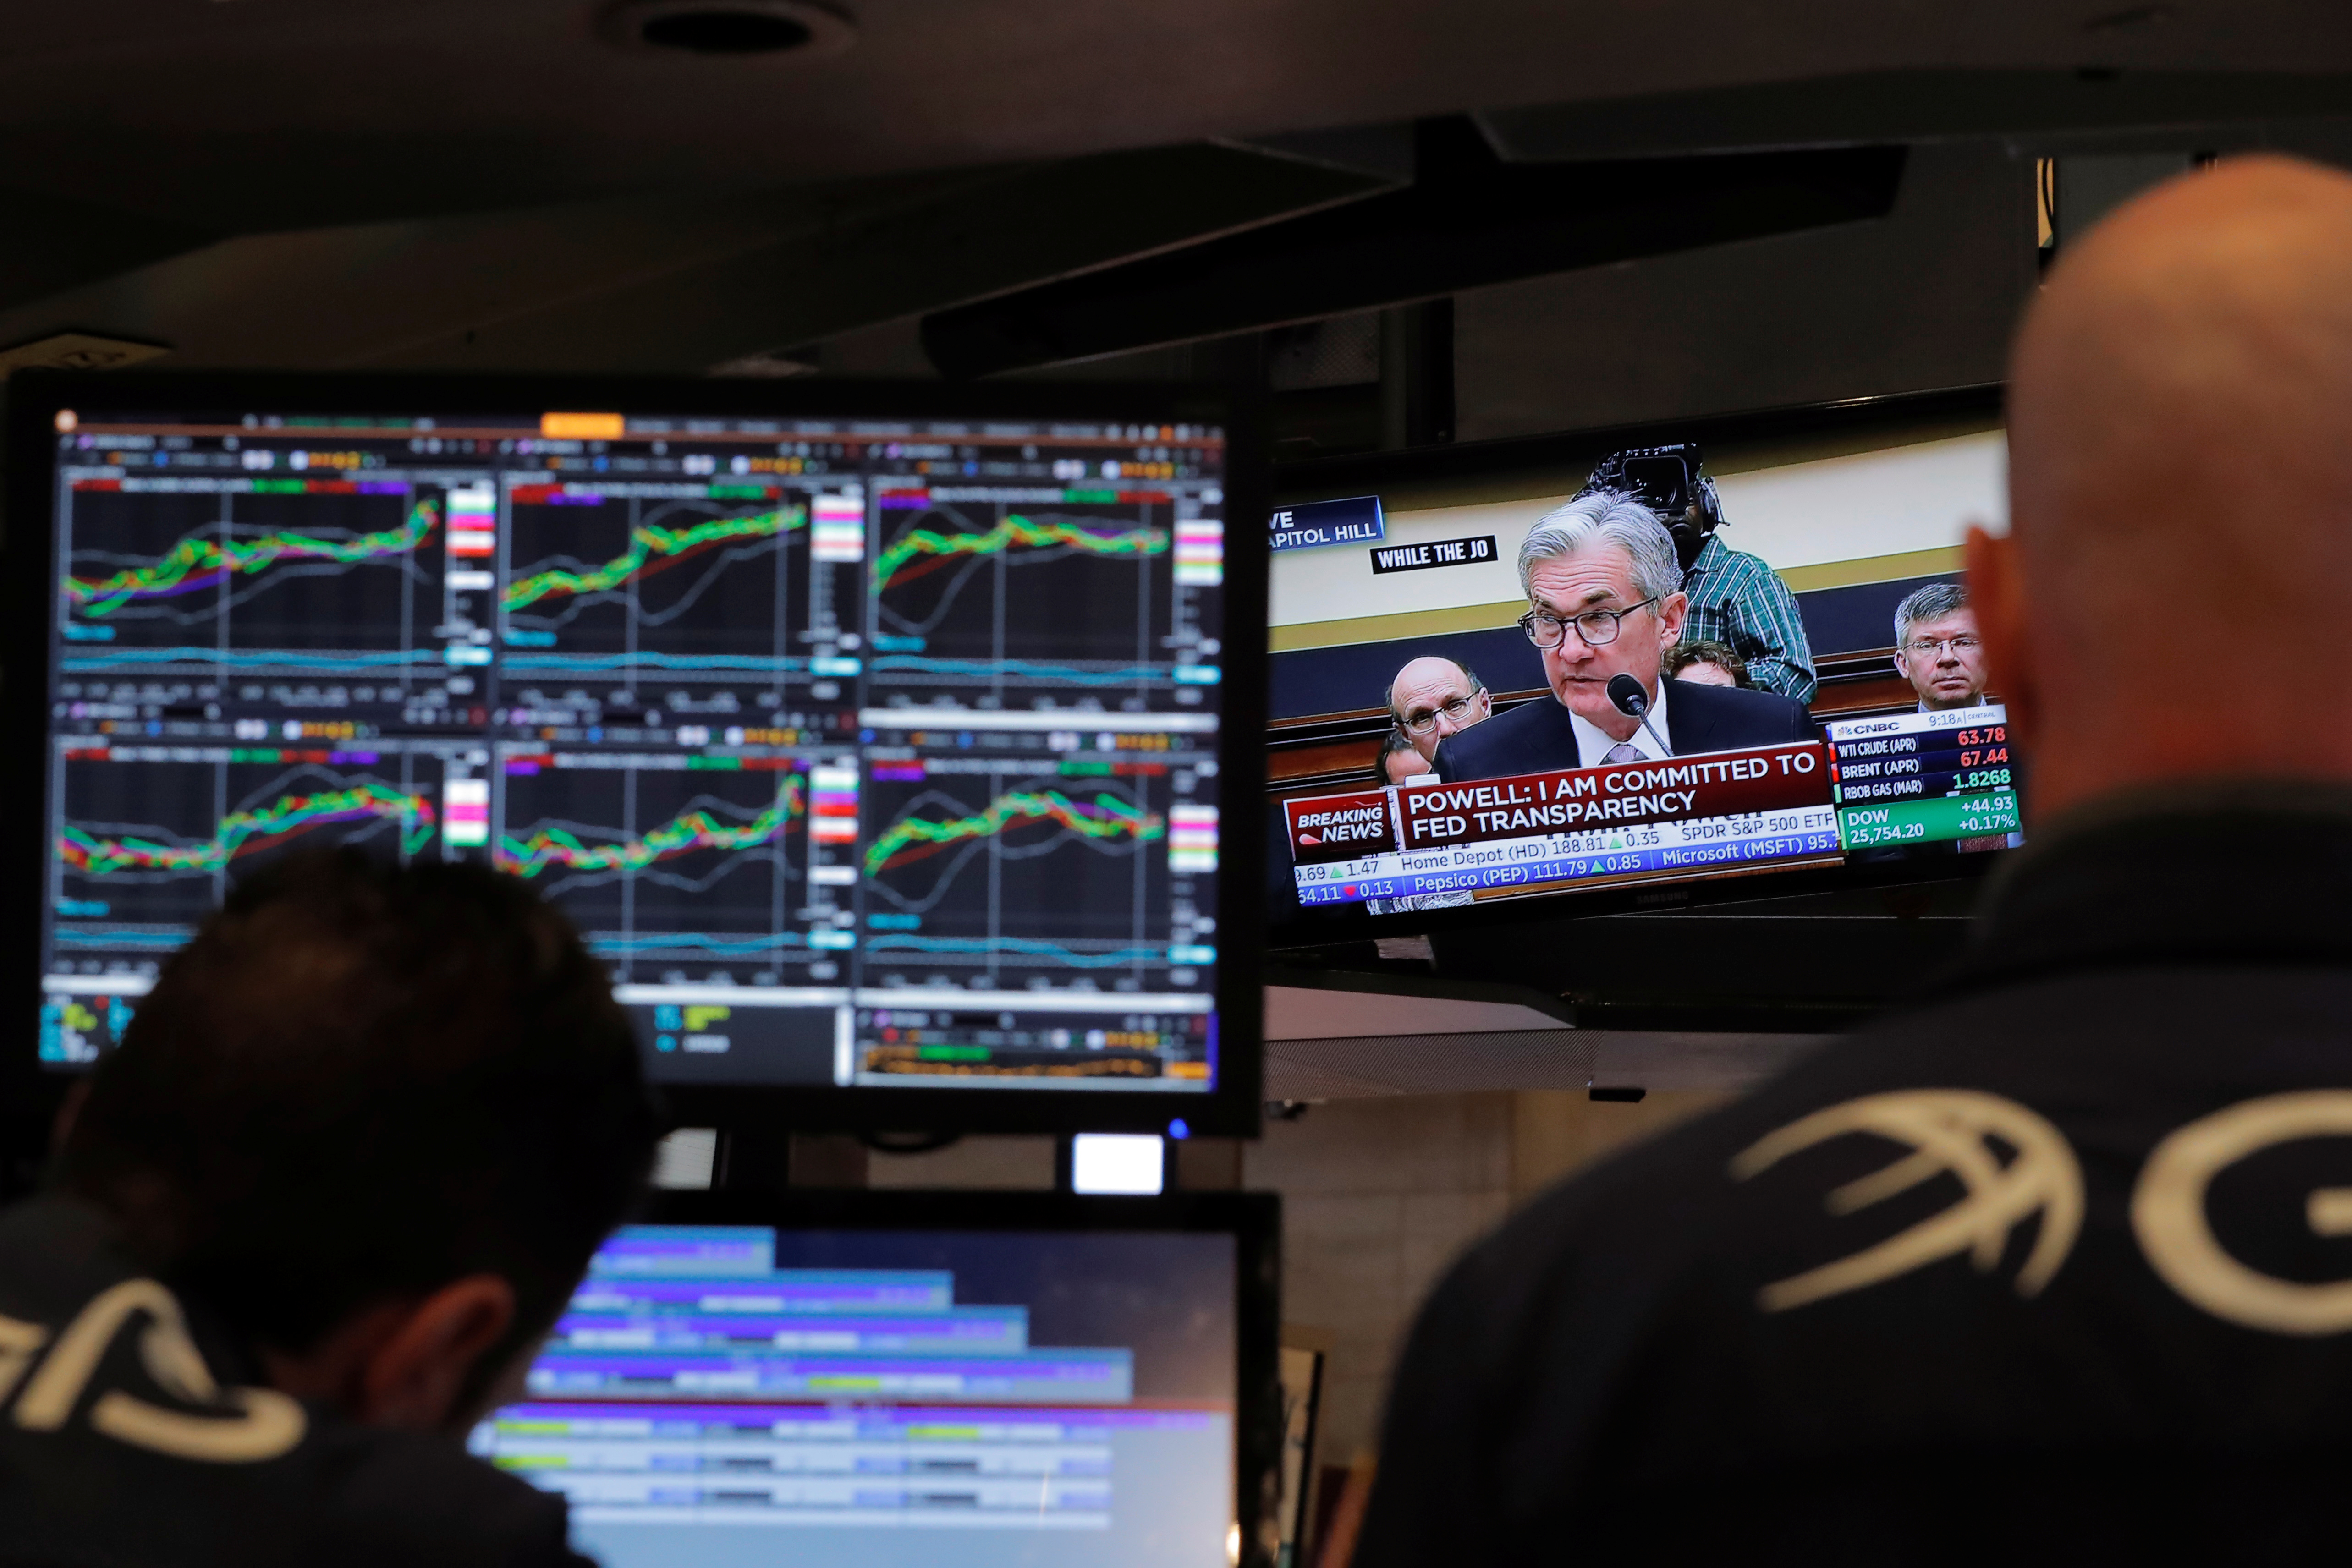 Federal Reserve Chairman Jerome Powell speaks on a television as traders work on the floor of the New York Stock Exchange in New York, U.S., February 27, 2018.  REUTERS/Lucas Jackson - RC1371196FE0